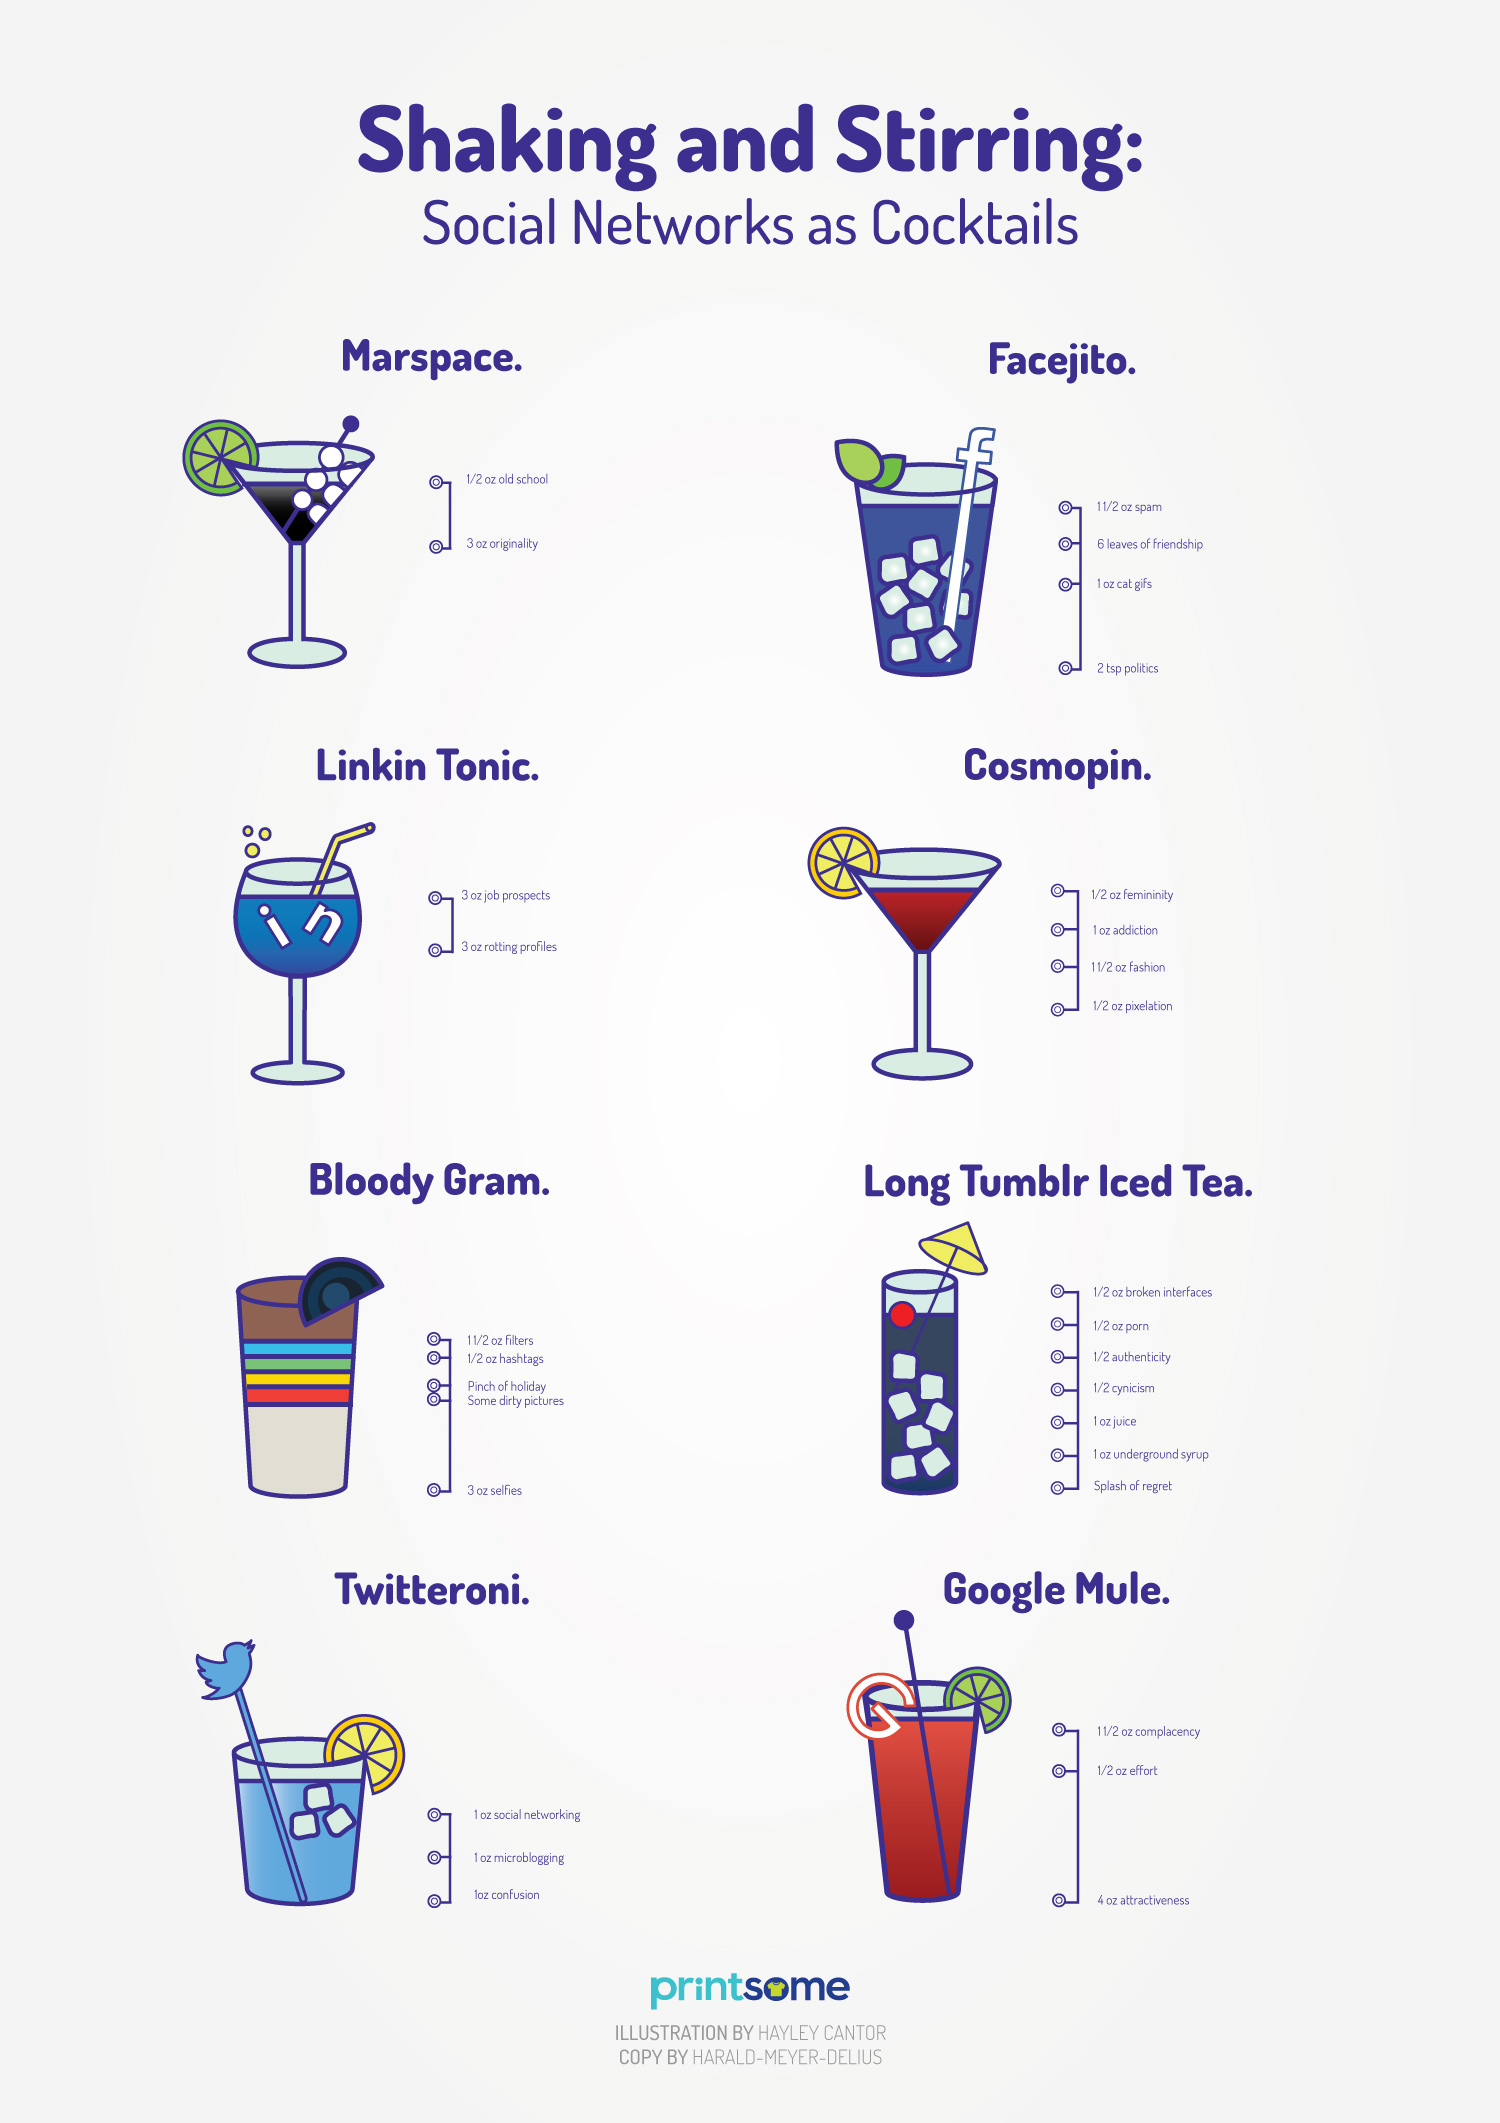 Shaking-and-stirring-social-media-cocktails-poster